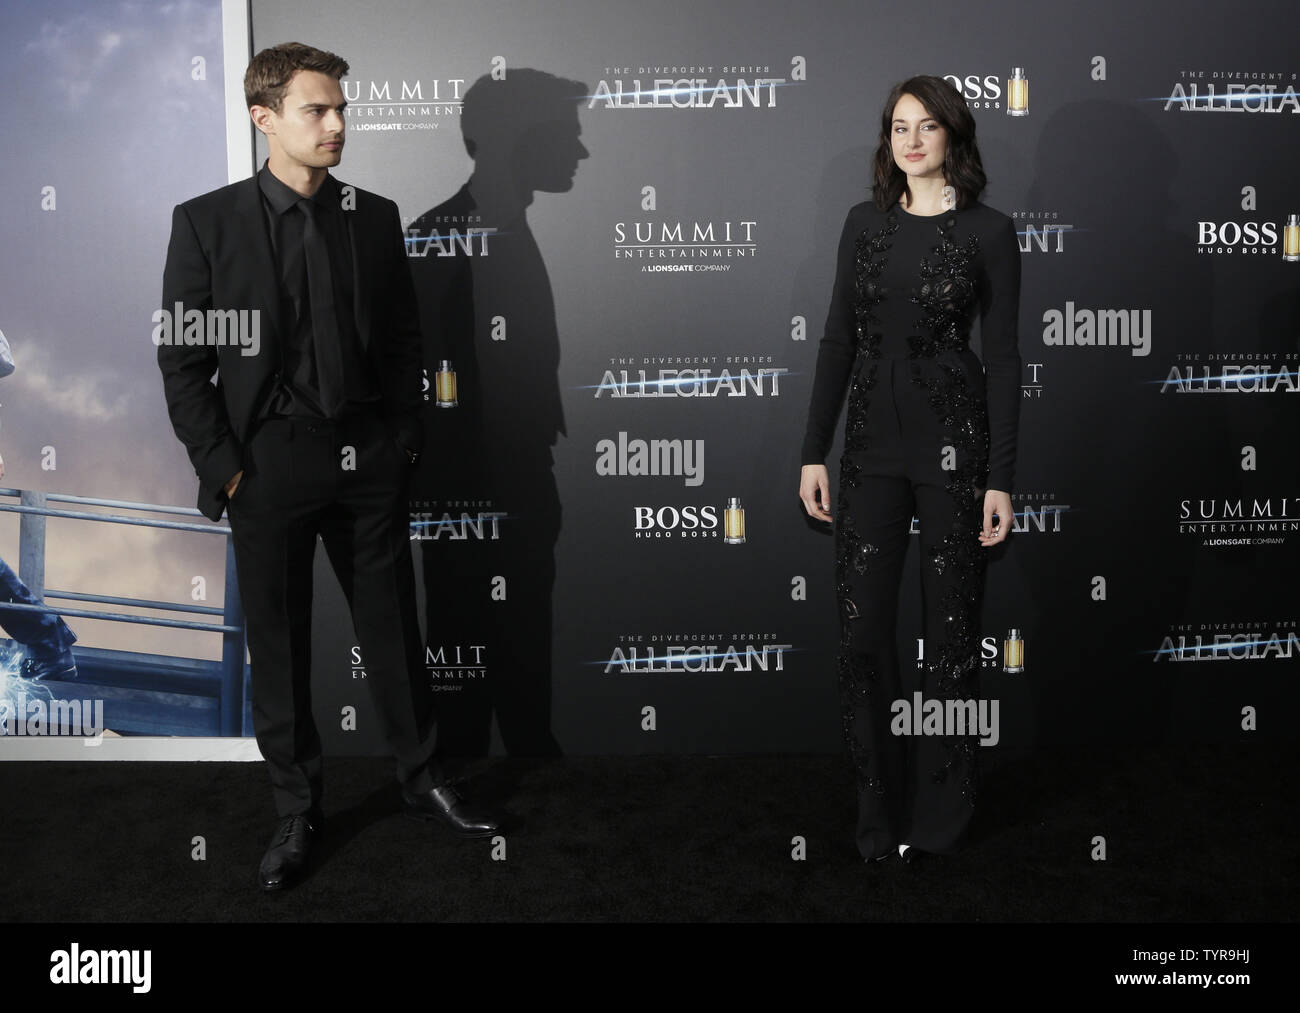 Allegiant 2016 Theo High Resolution Stock Photography And Images Alamy